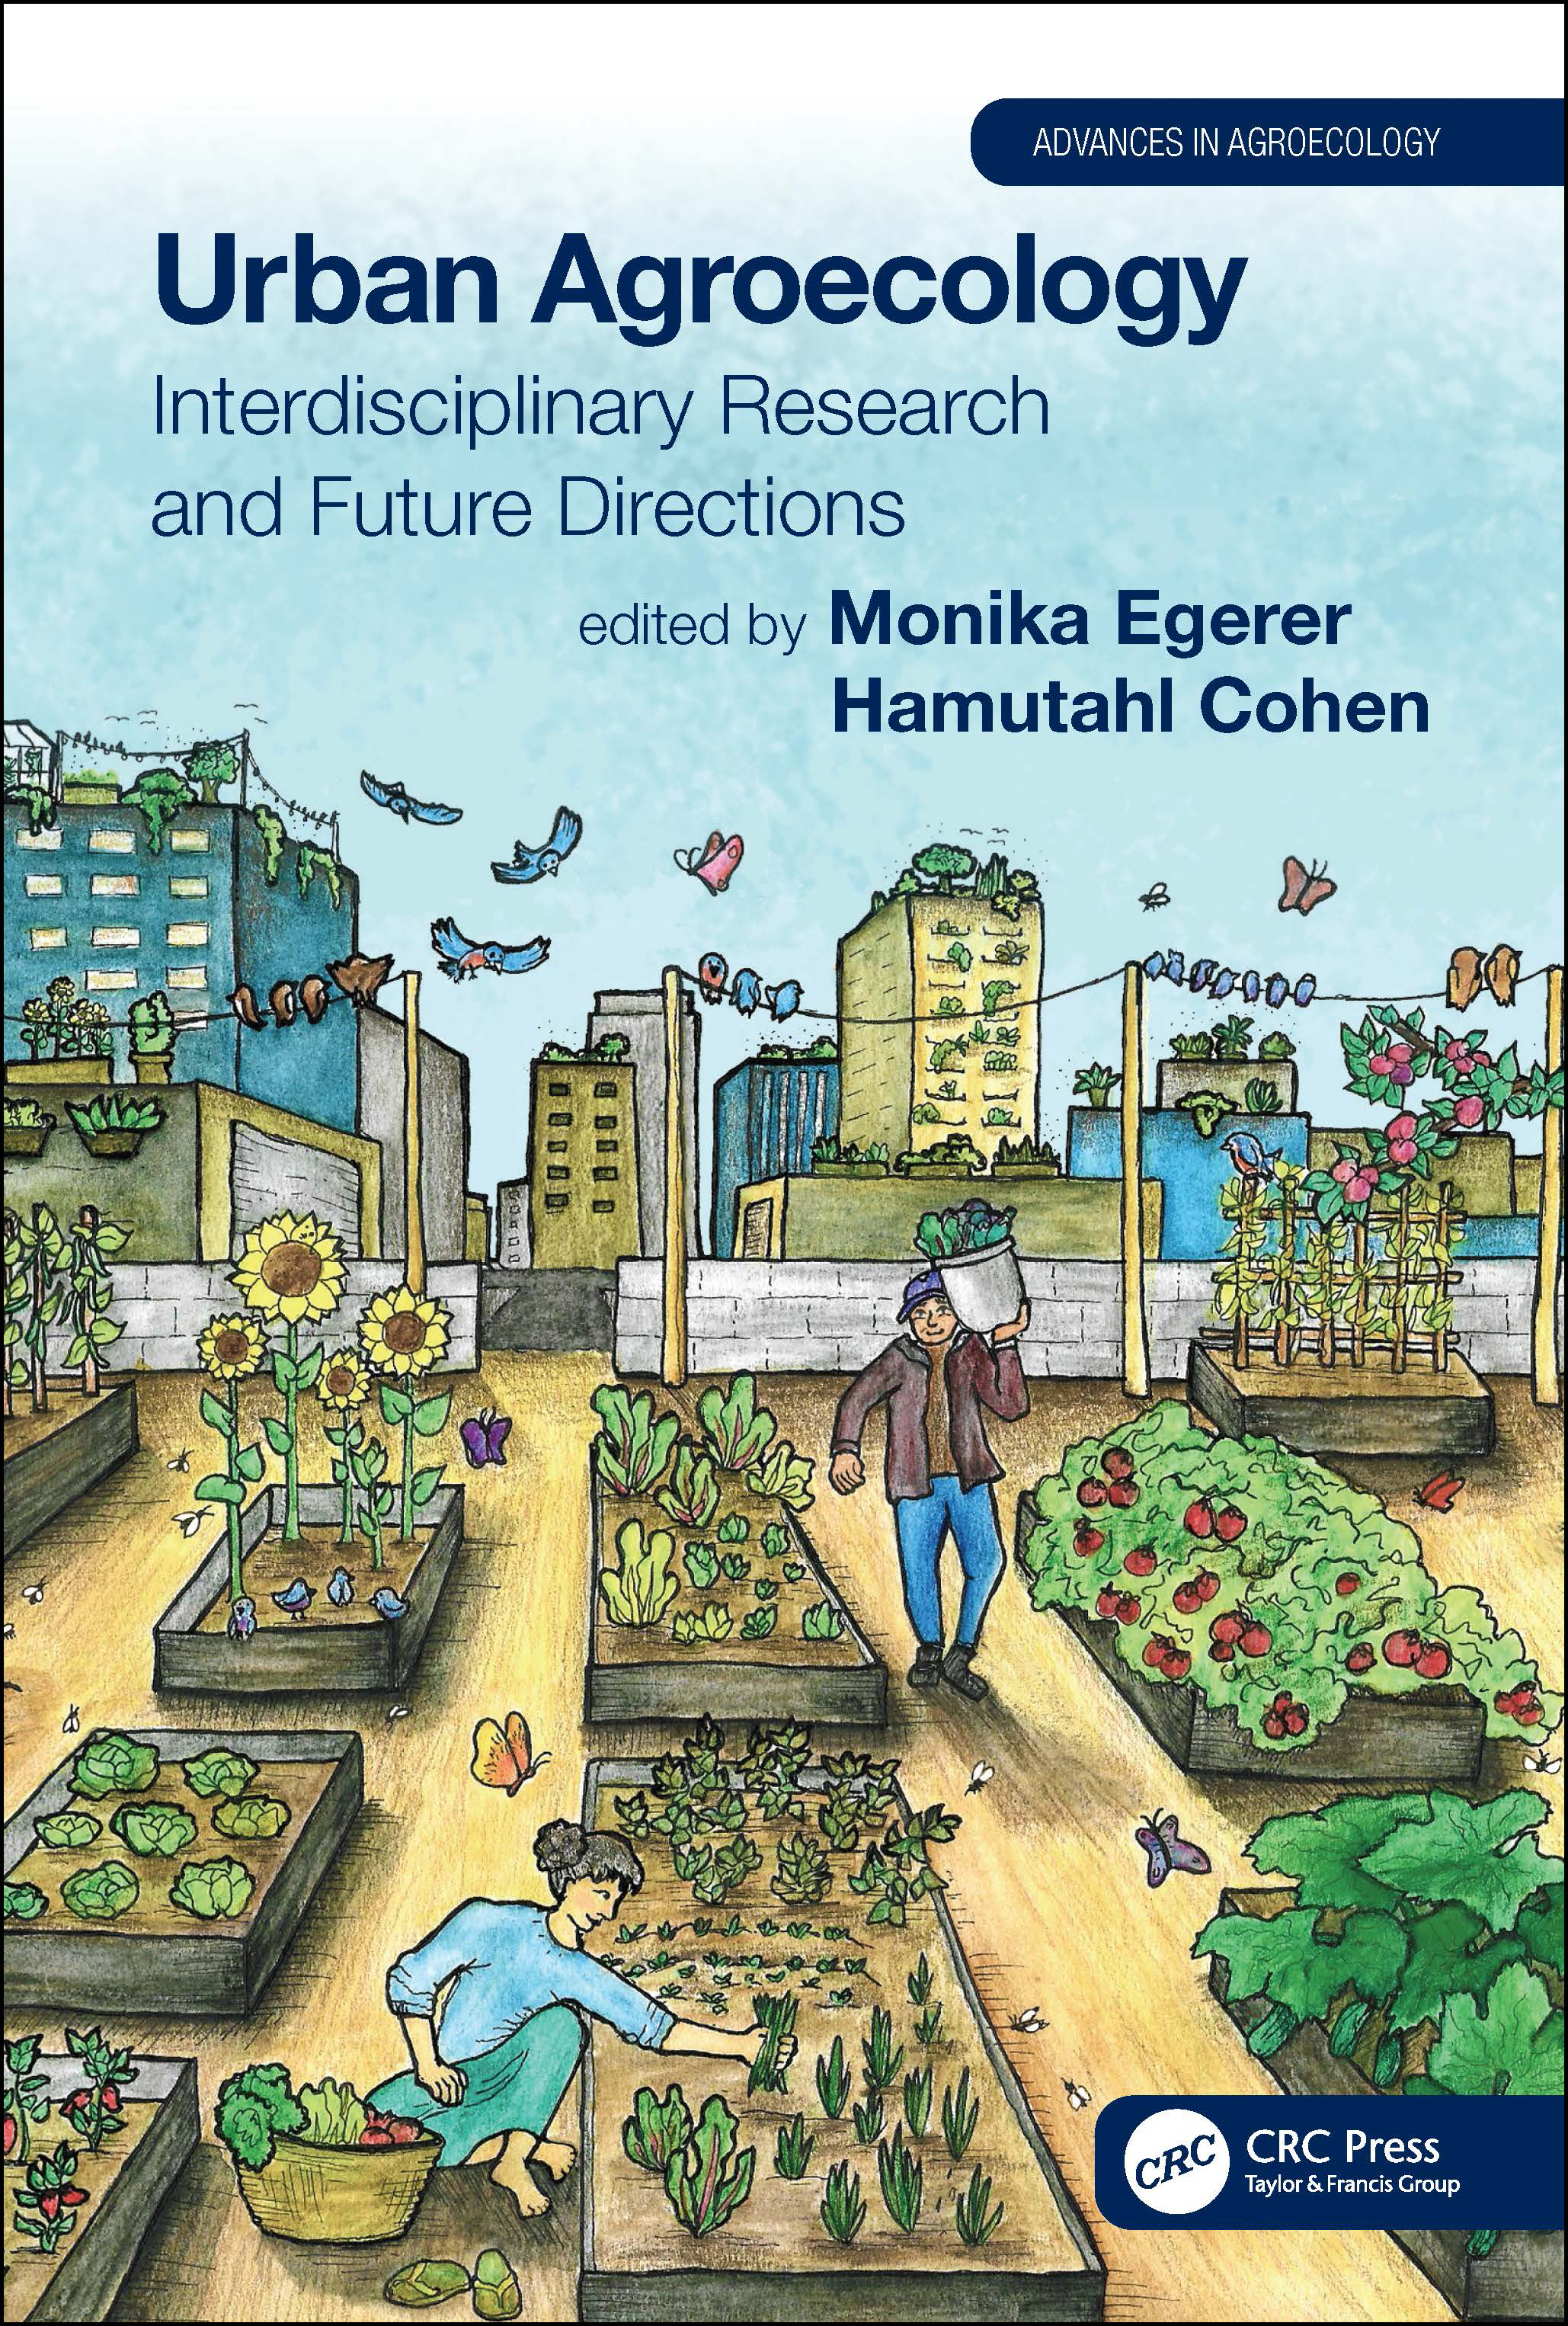 An Expanded Scope of Biodiversity in Urban Agriculture, with Implications for Conservation